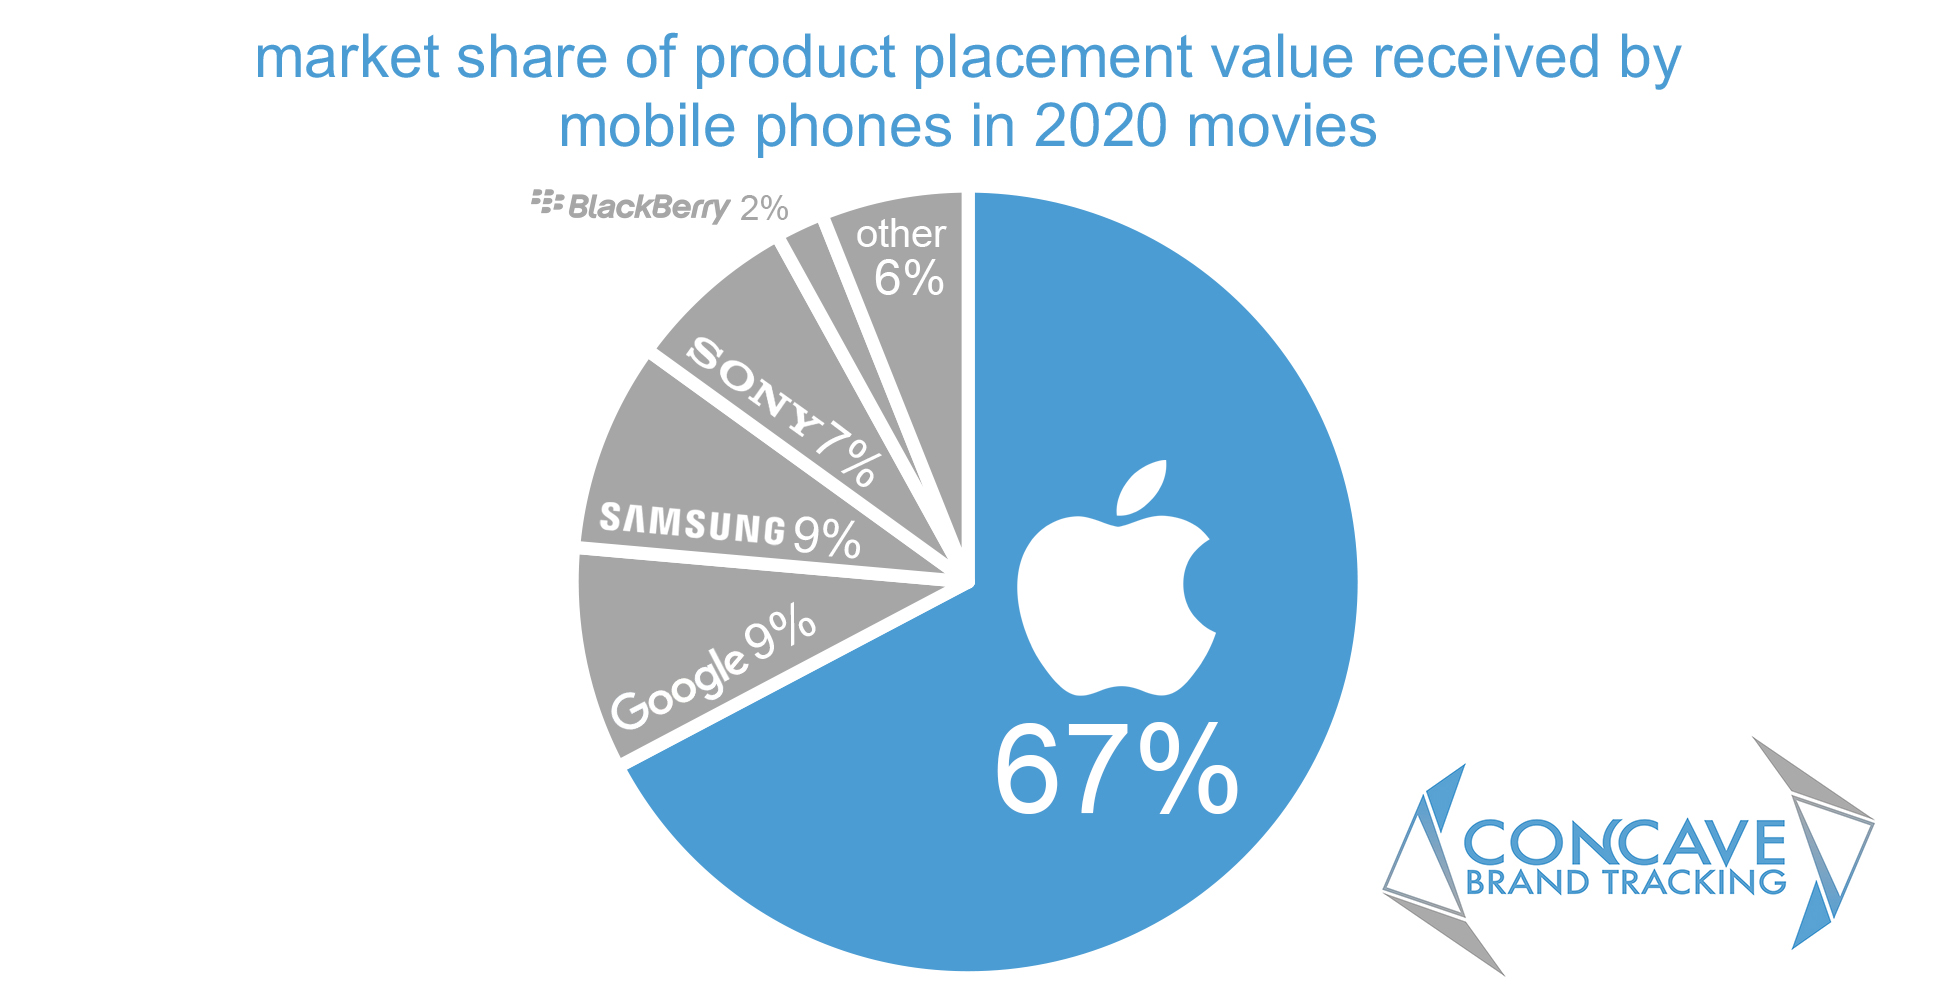 Market of share of product placement value received by mobile phones in 2020 films and movies. Apple had 67%, Google and Samsung had 9%, Sony had 7% and Blackberry had 2%.